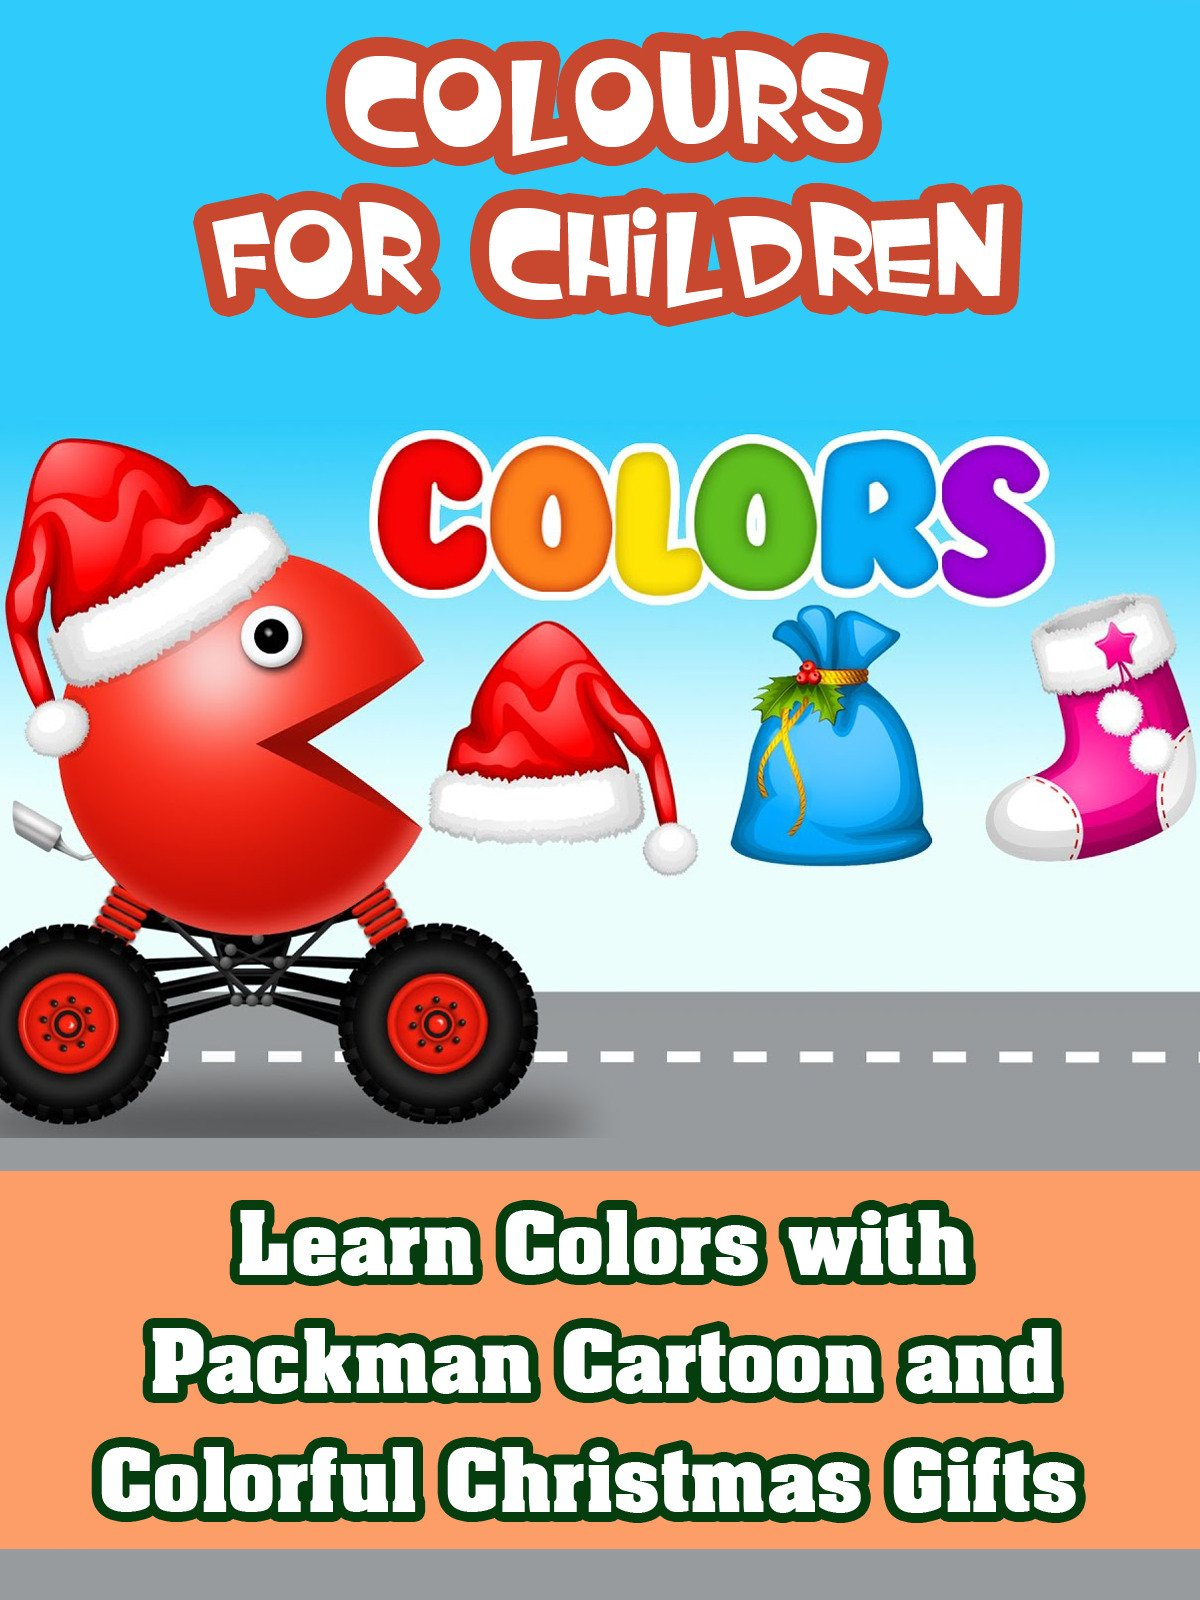 Learn Colors with Packman Cartoon and Colorful Christmas Gifts